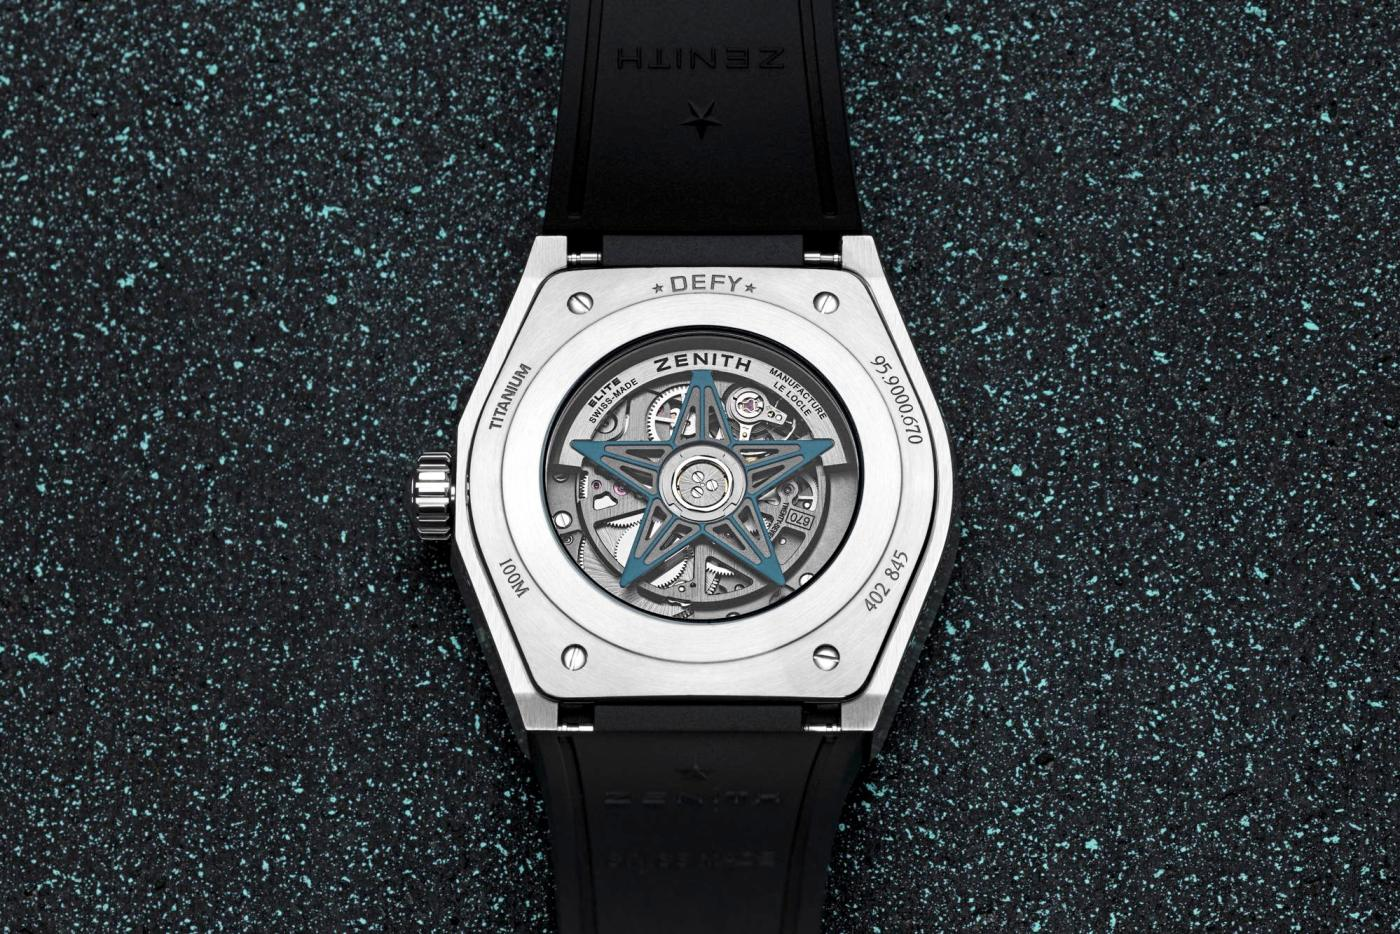 Zenith Defy Classic Range Rover Special Edition caseback